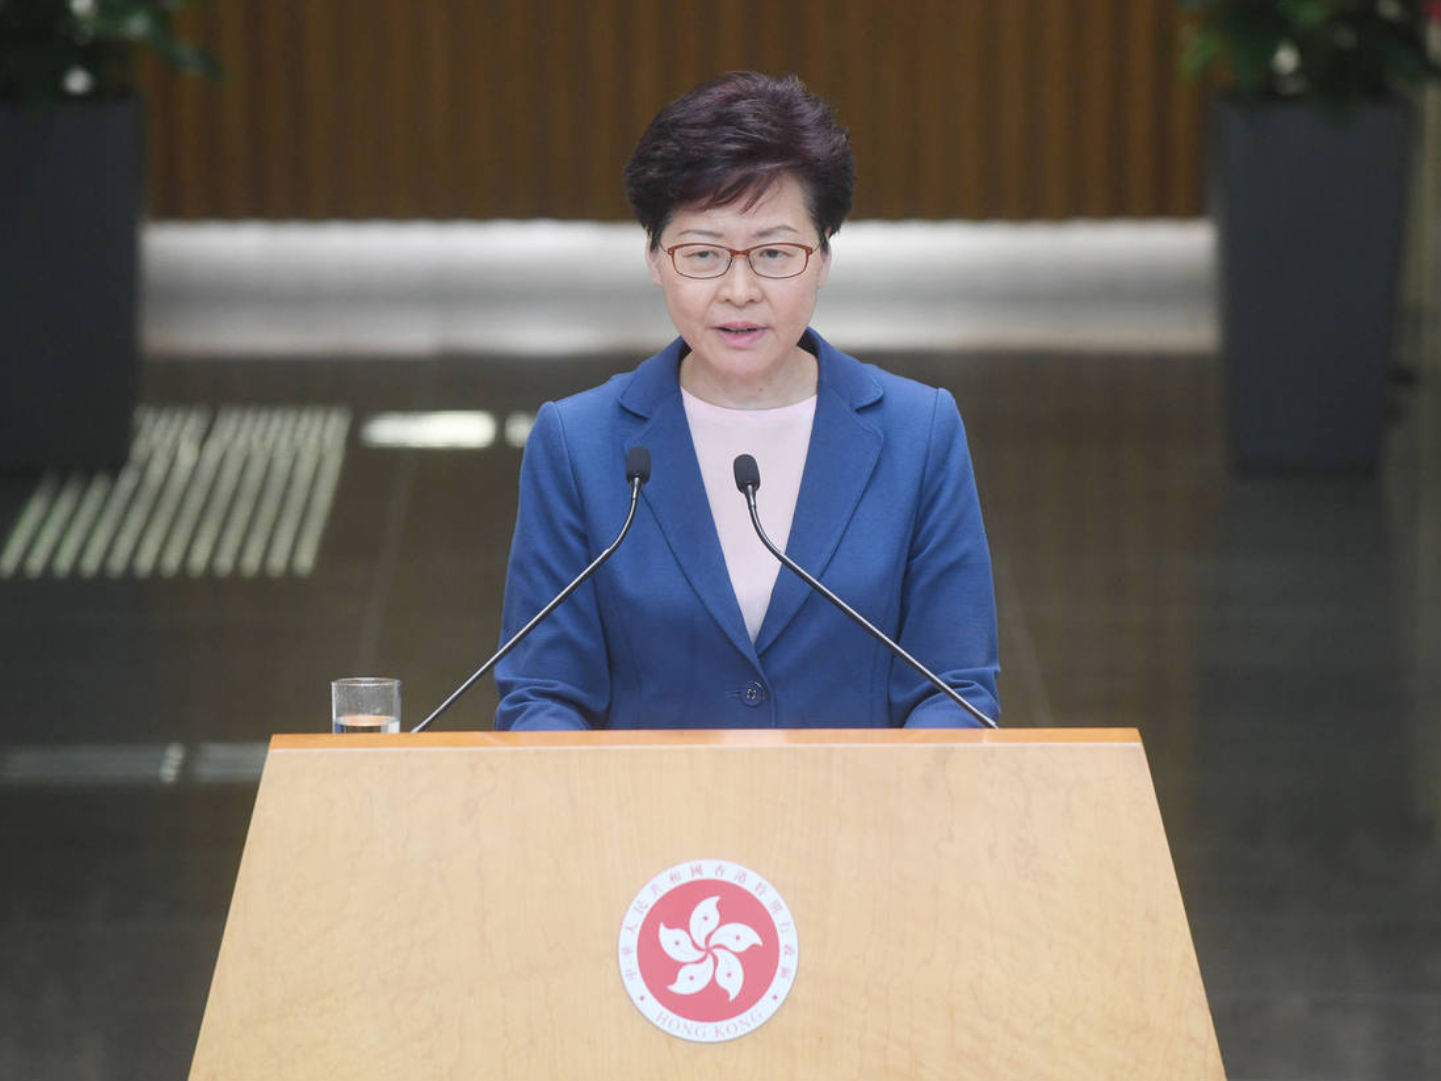 HKSAR chief executive gives priority to ending violence, restoring order